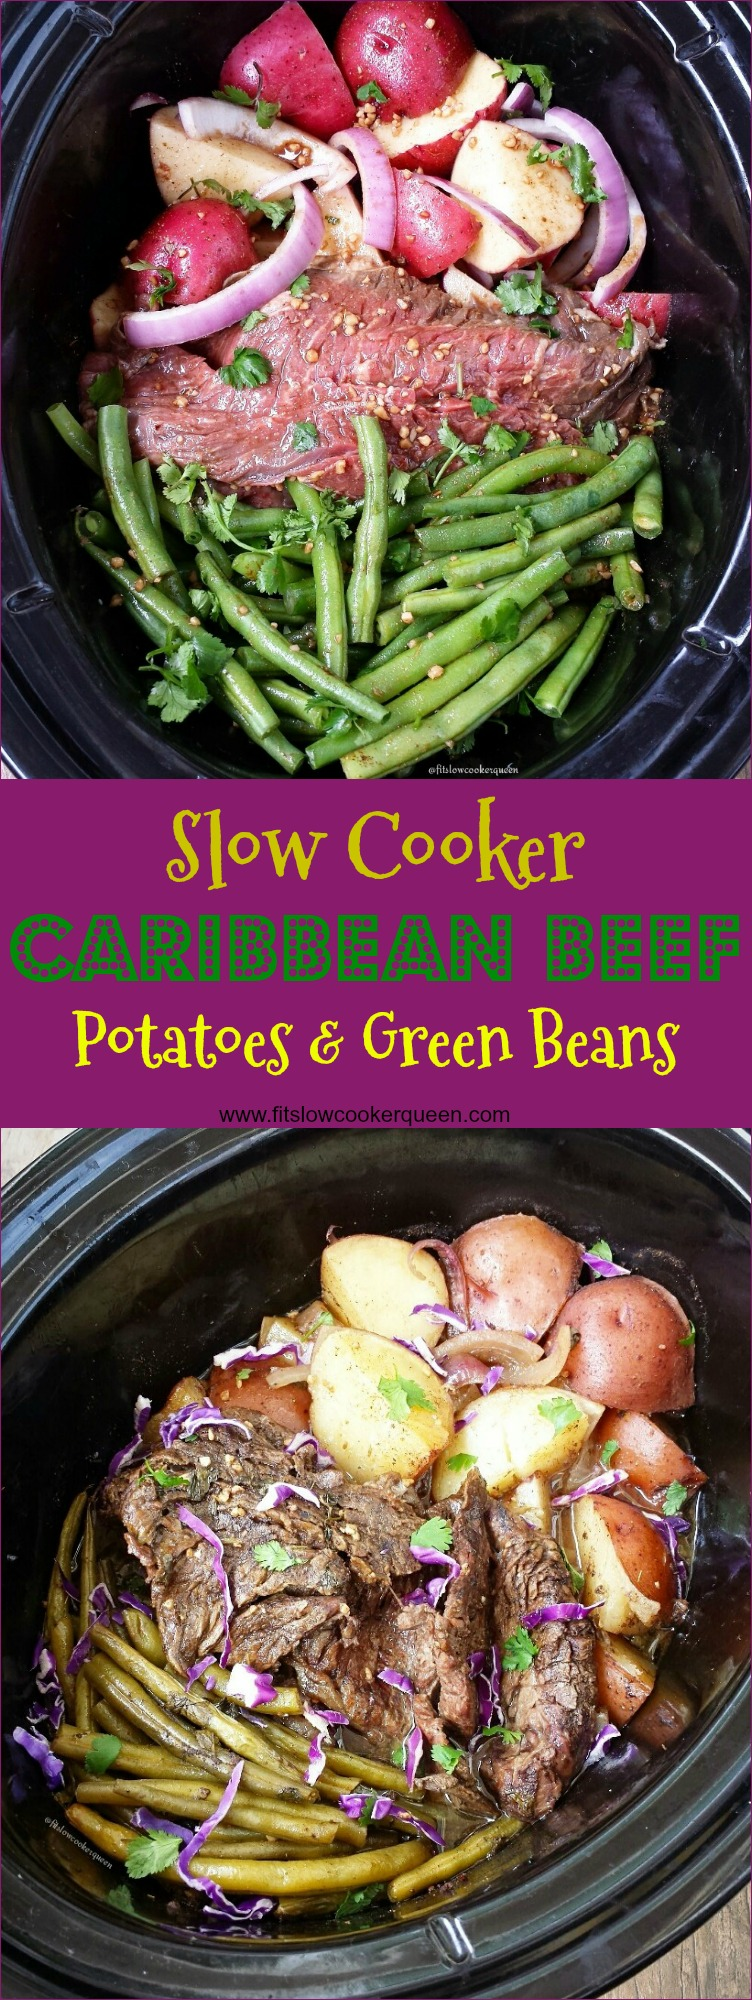 slow cooker caribbean beef potatoes green beans pin